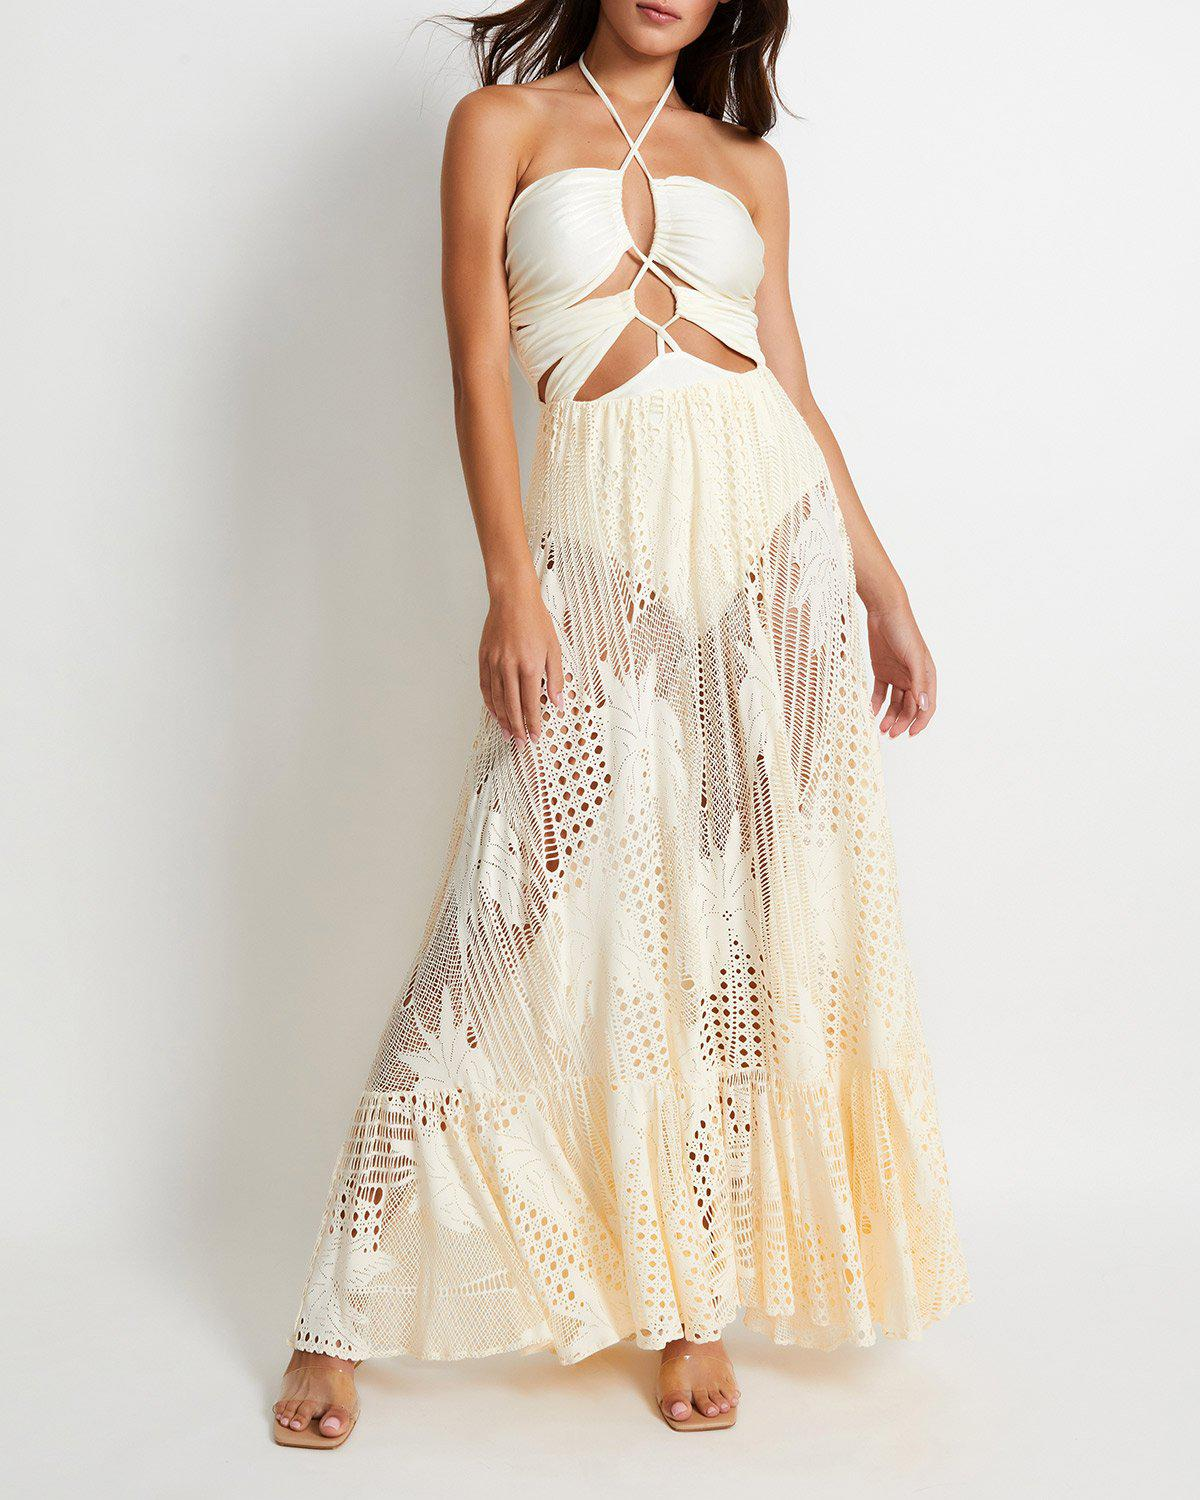 Laceup Beach Dress (ONLINE EXCLUSIVE)